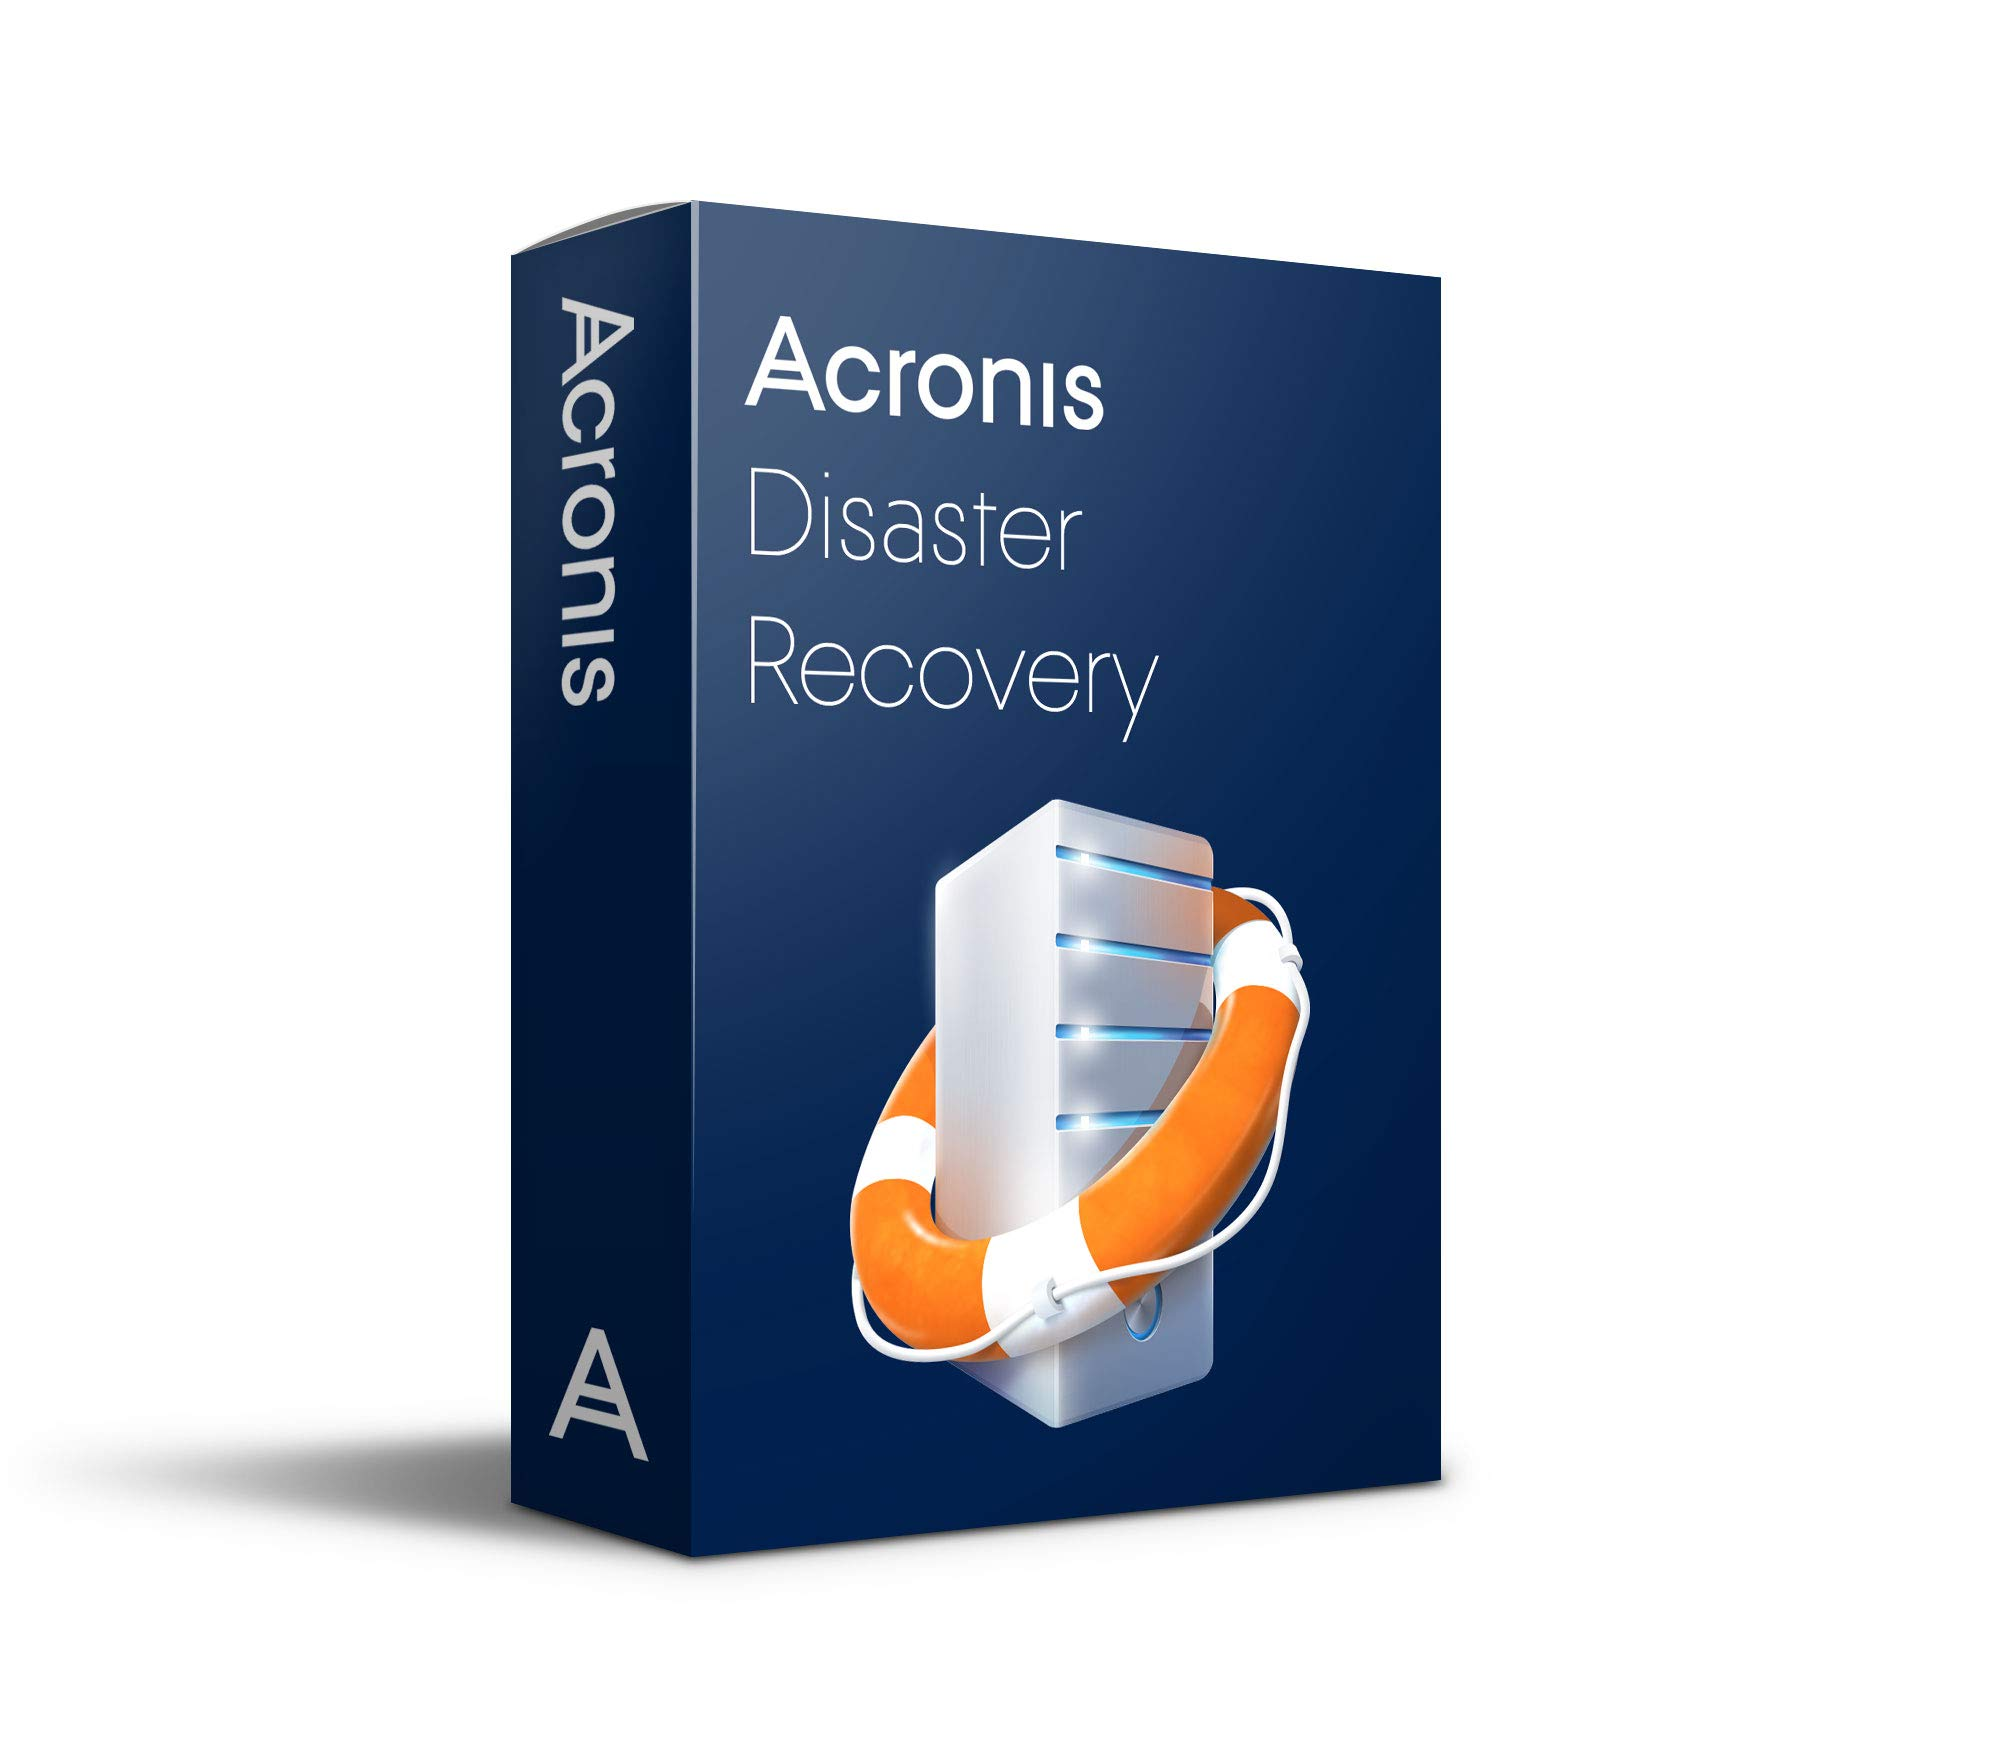 Acronis | DRAAEBLOS11 | Disaster Recovery Add-on Pack Subscription License, 1 Year by Acronis